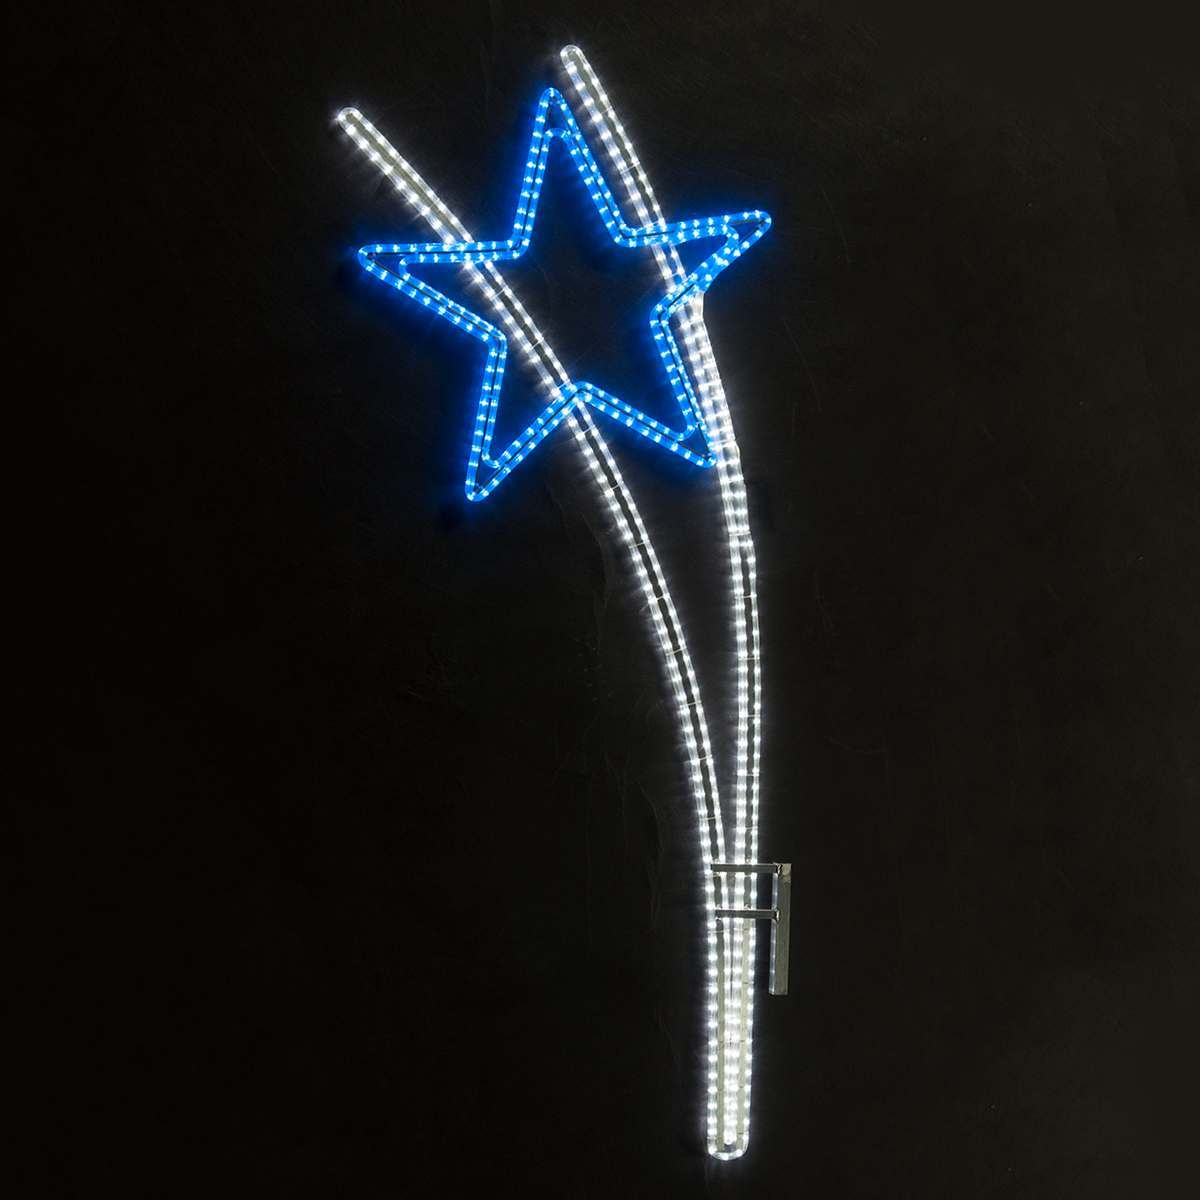 Shooting Star Silhouette With LED Rope Light, 1.7m